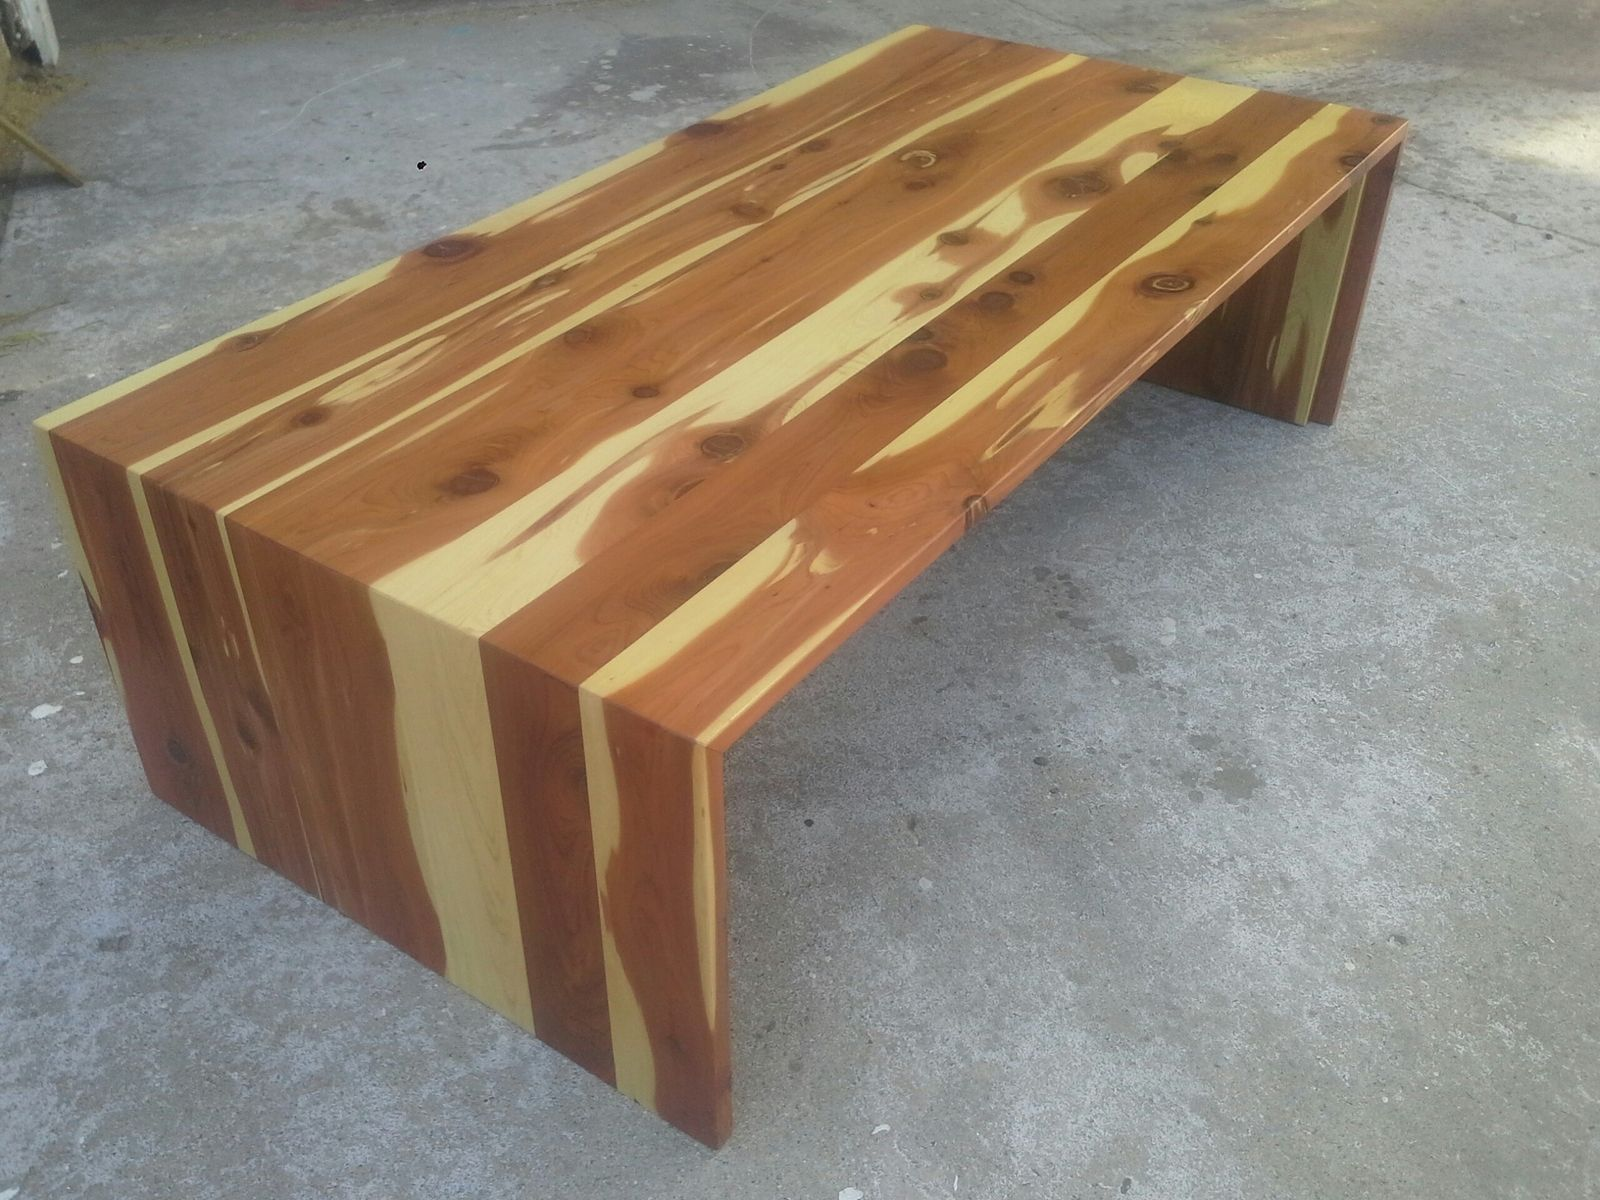 Custom Cedar Waterfall Coffee Table By TPT CAL CustomMadecom